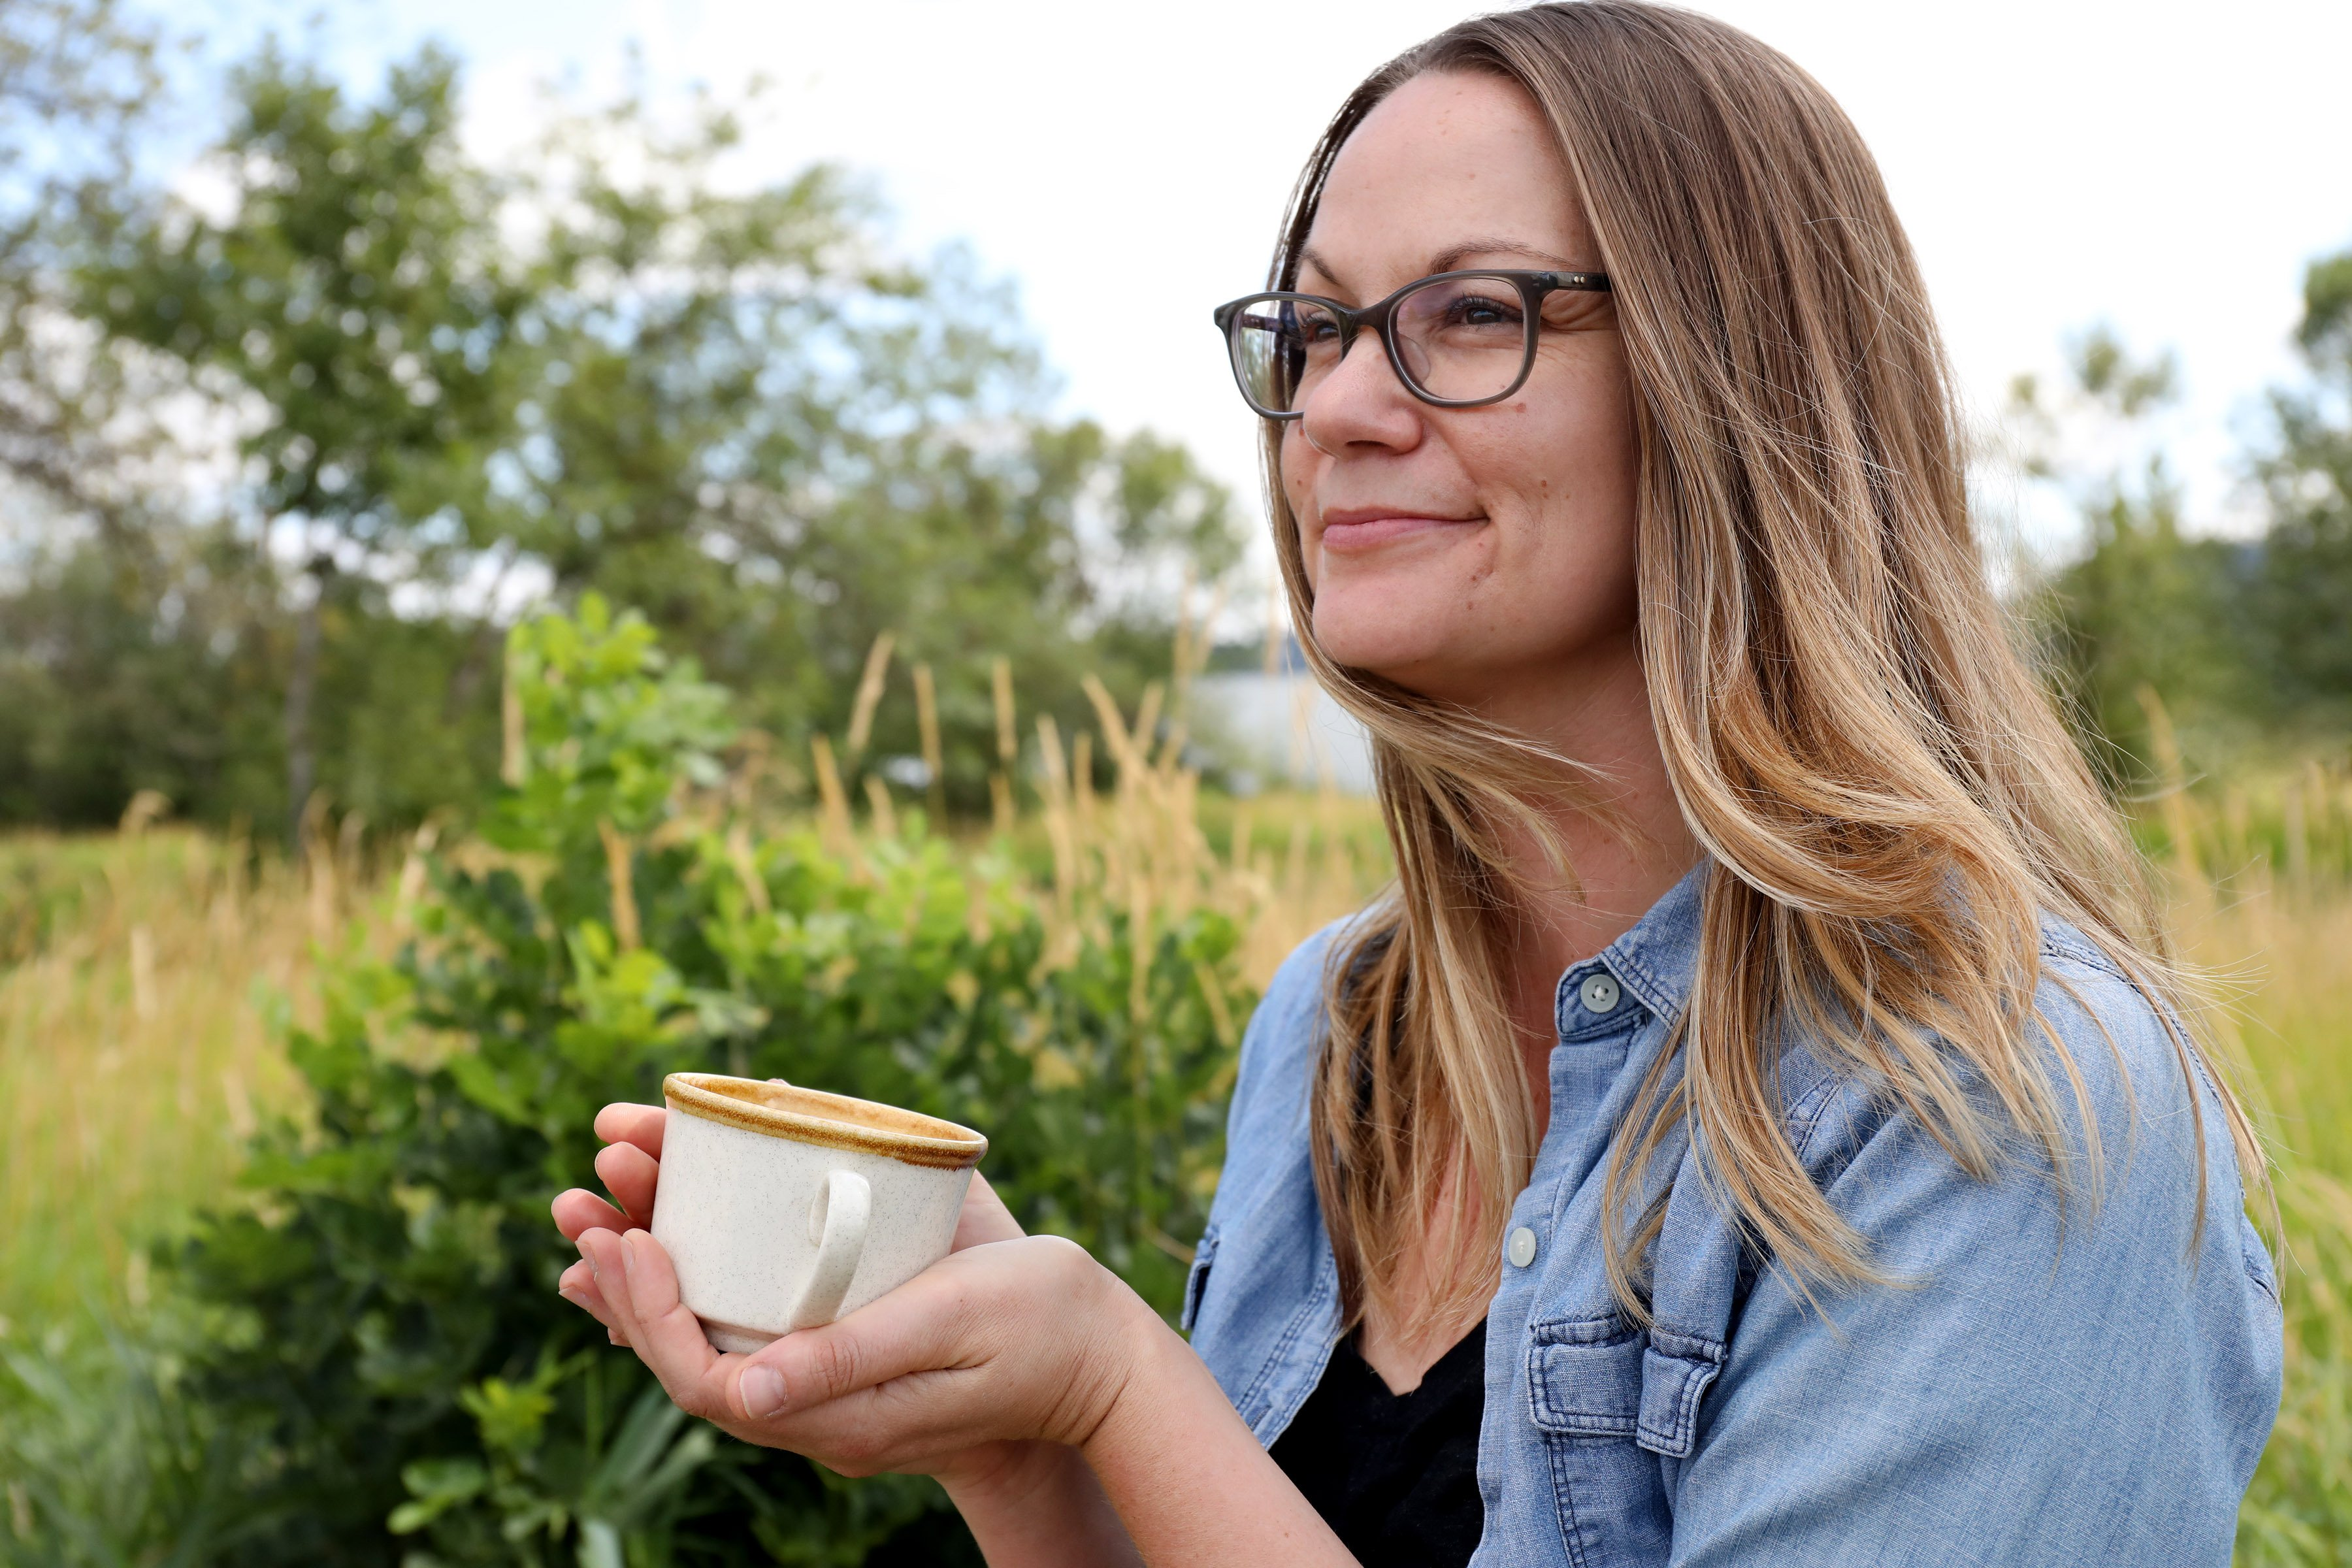 Production manager of Mountain Rose Herbs, Julie DeBord, sips a cup of organic herbal tea near the protected wetlands at our facilities in Eugene, Oregon.